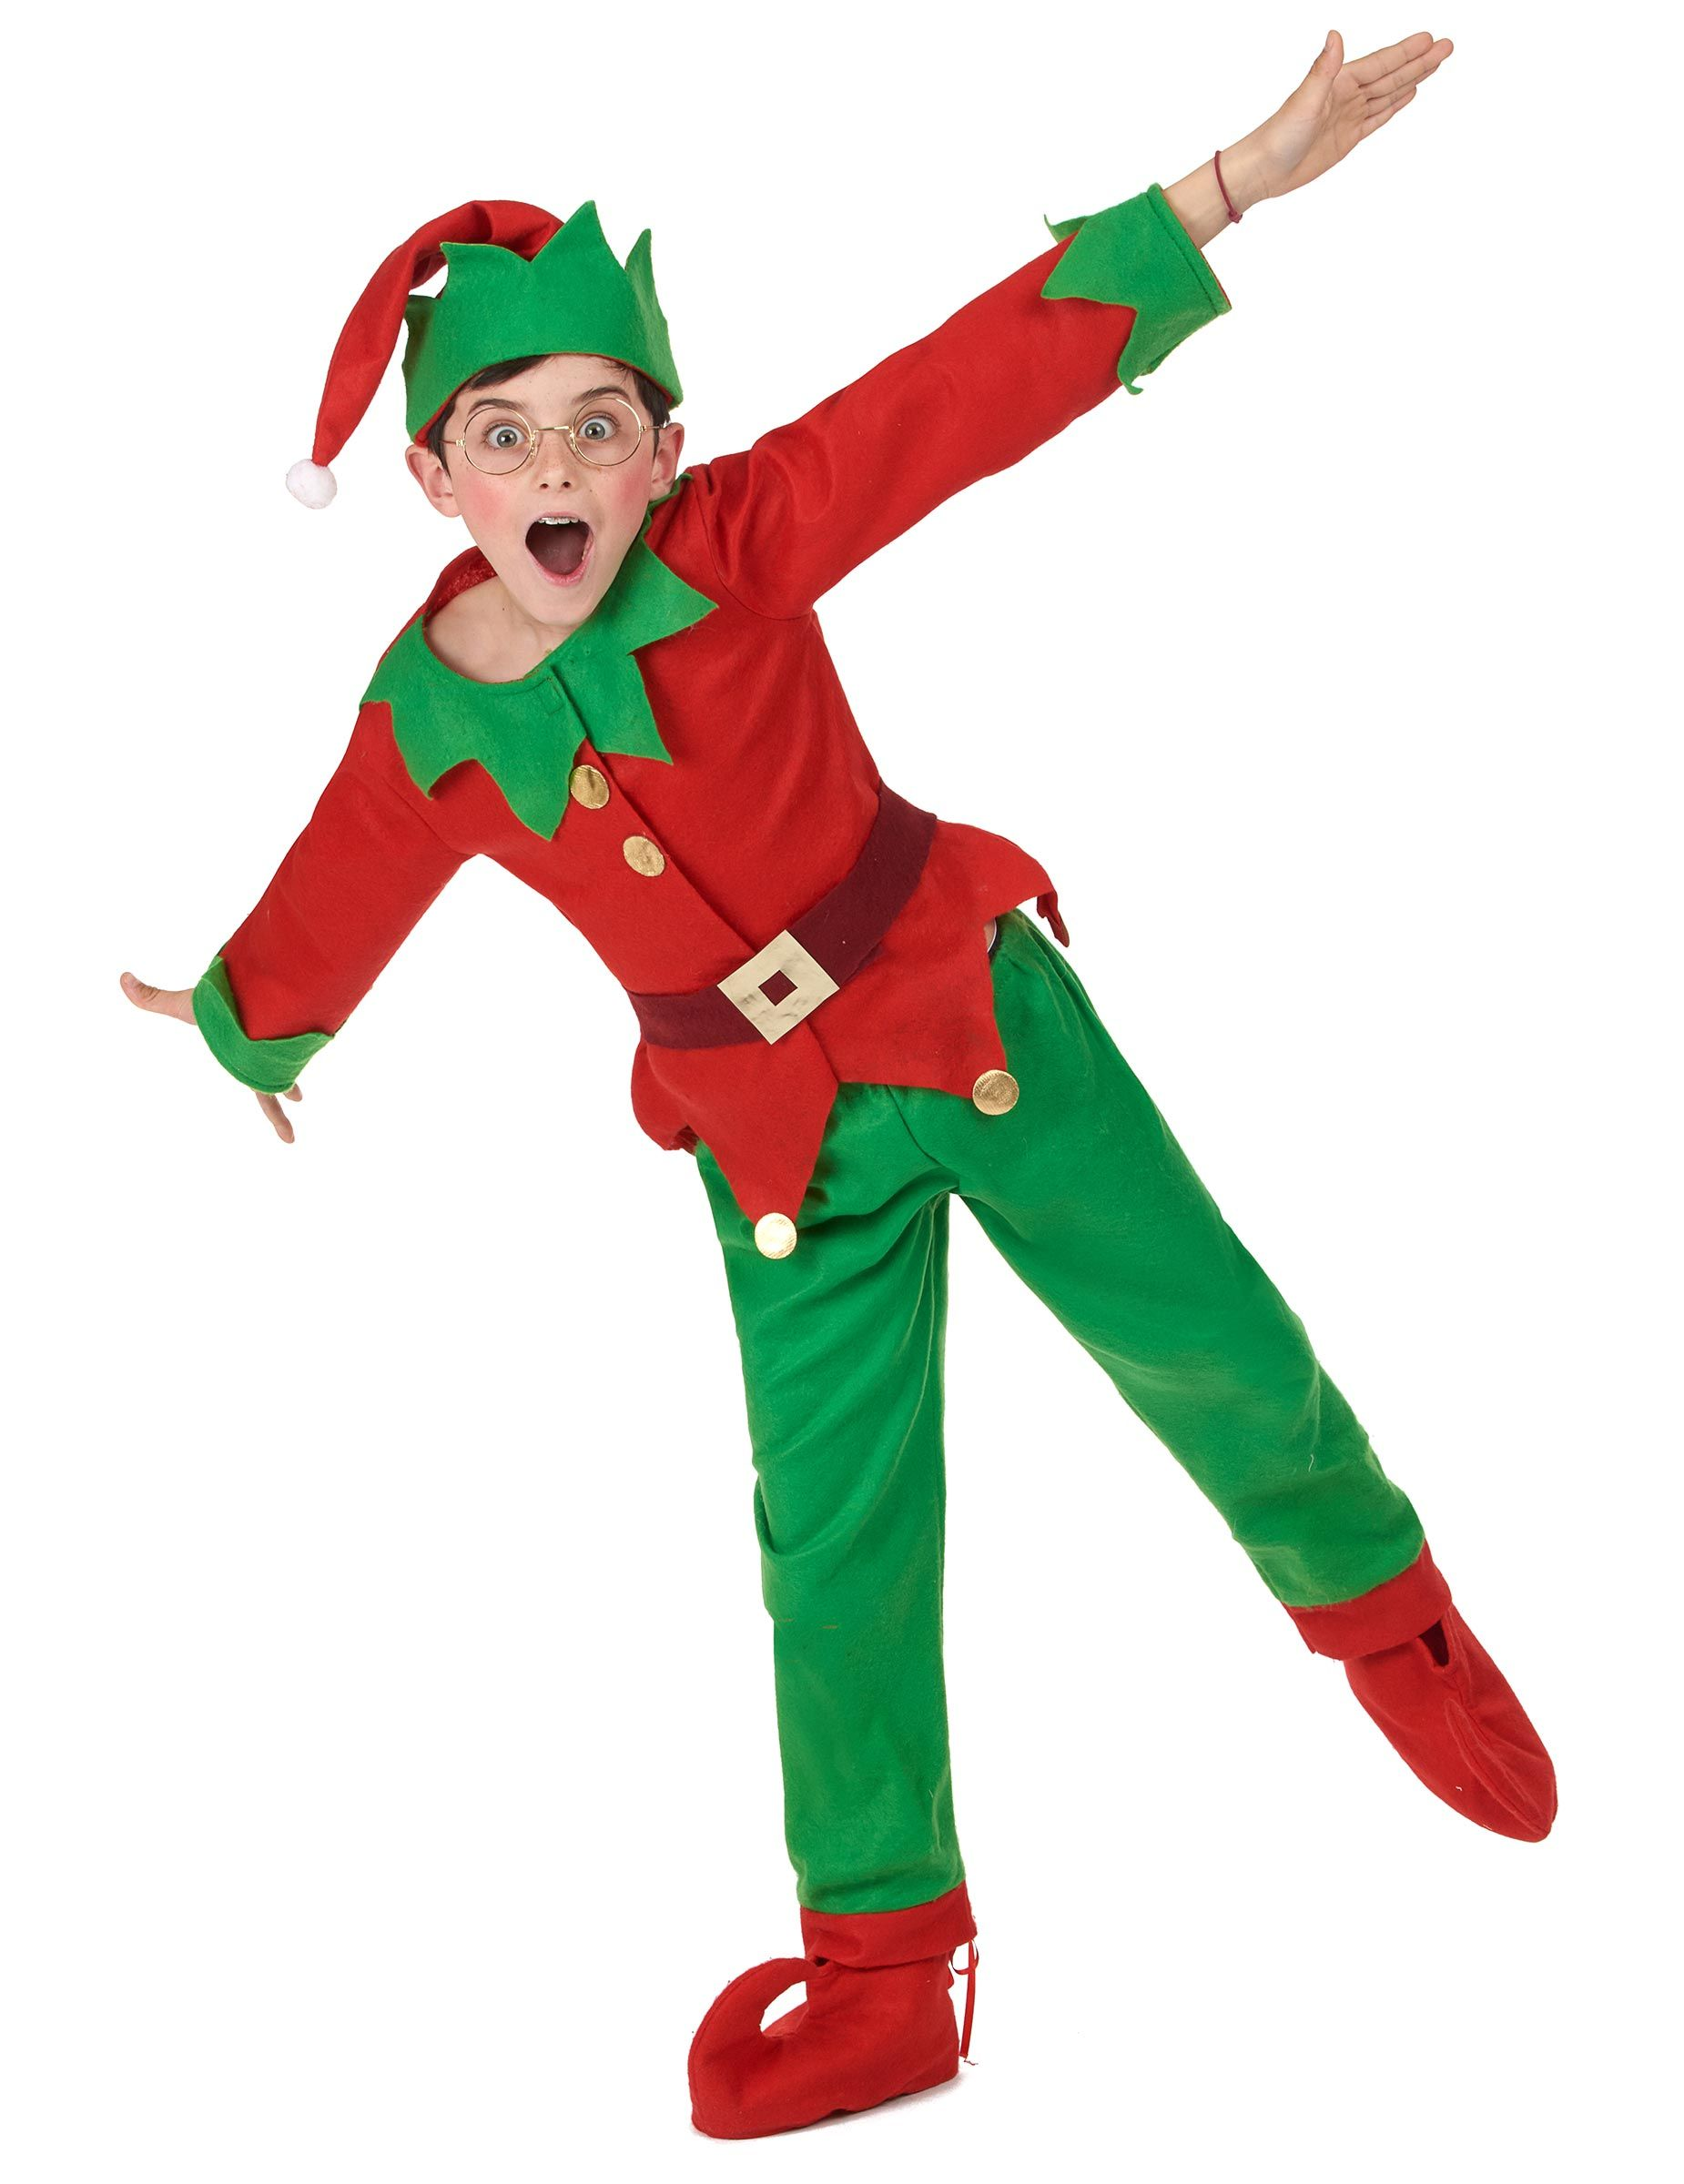 6a9c063a1ba37 Elf Christmas Costume for Kids  This elf costume for children consists of a  hat